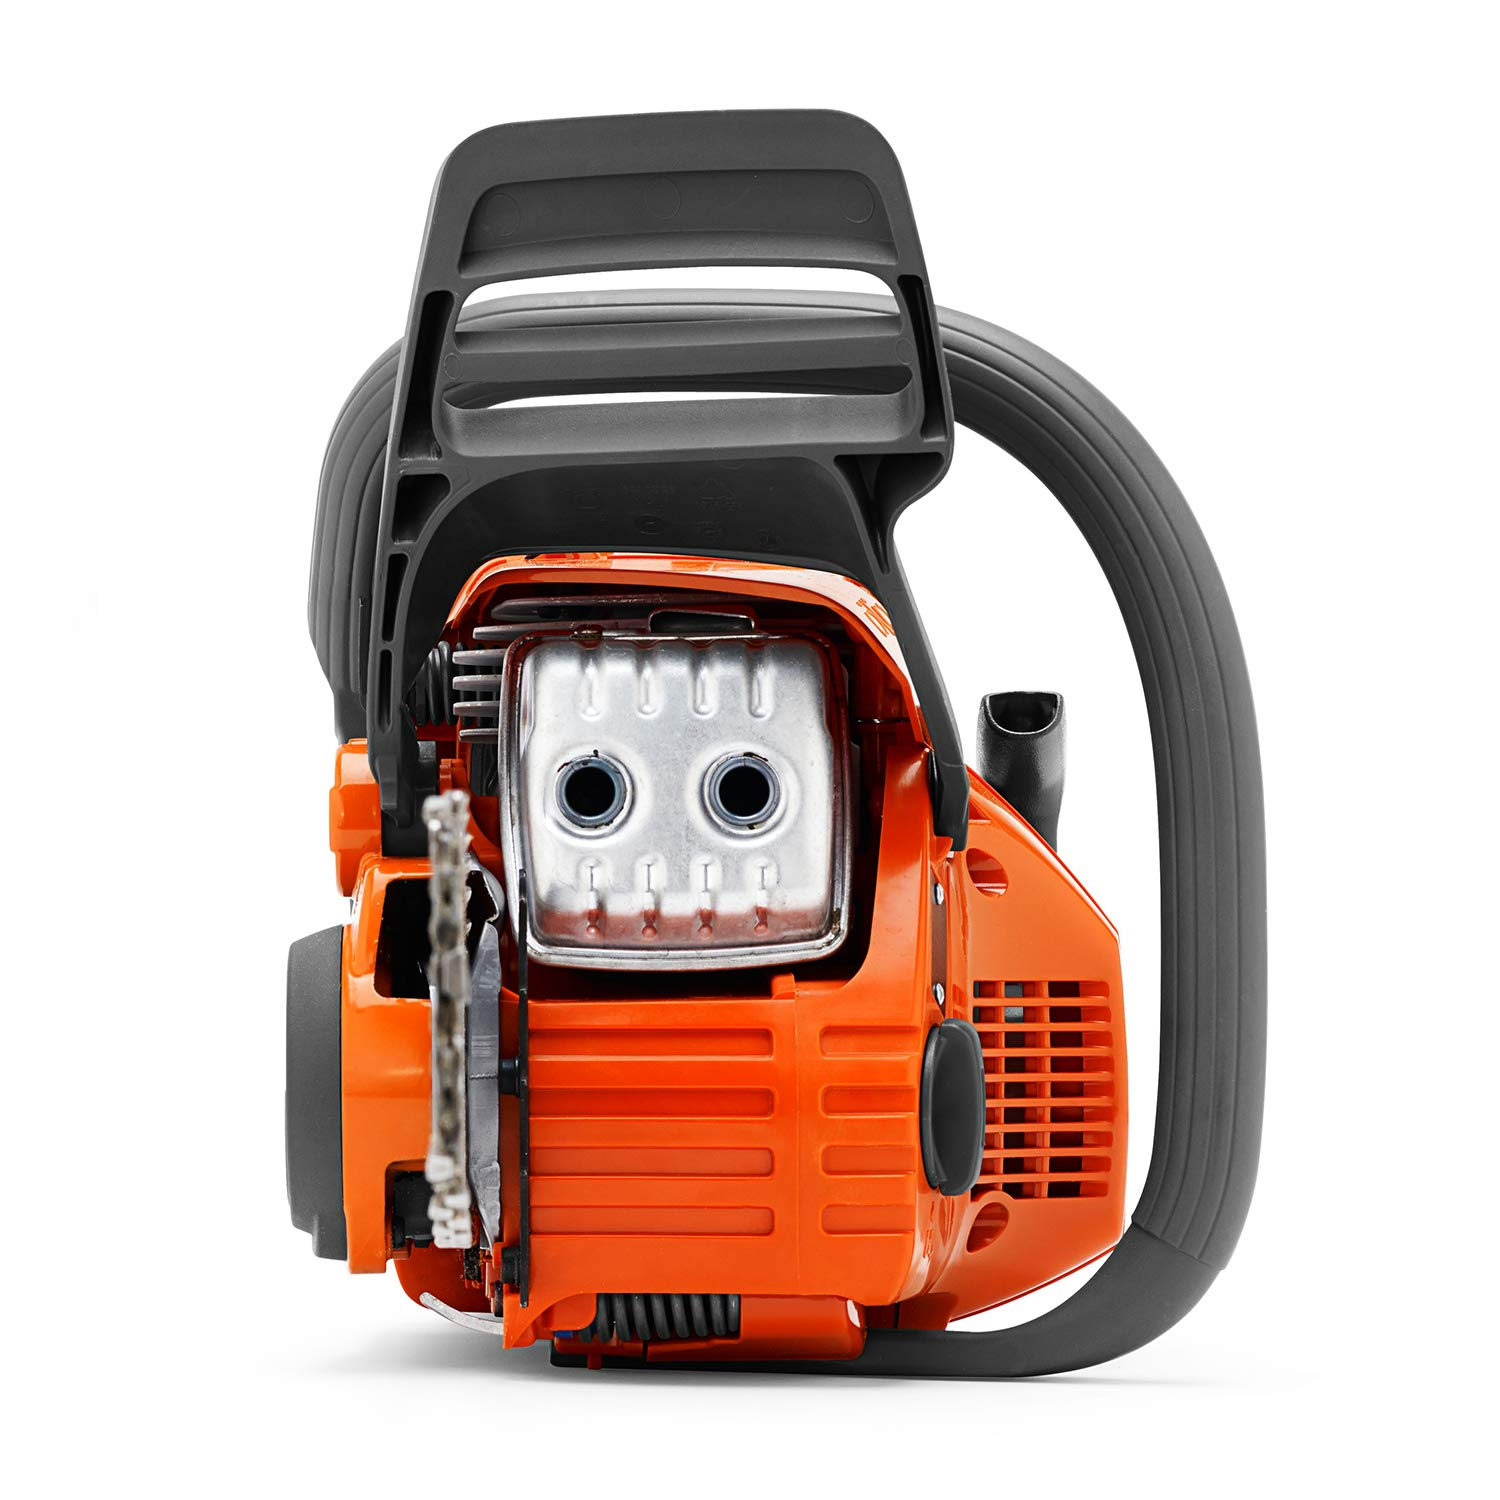 Husqvarna 460 Rancher Chainsaws product image 9